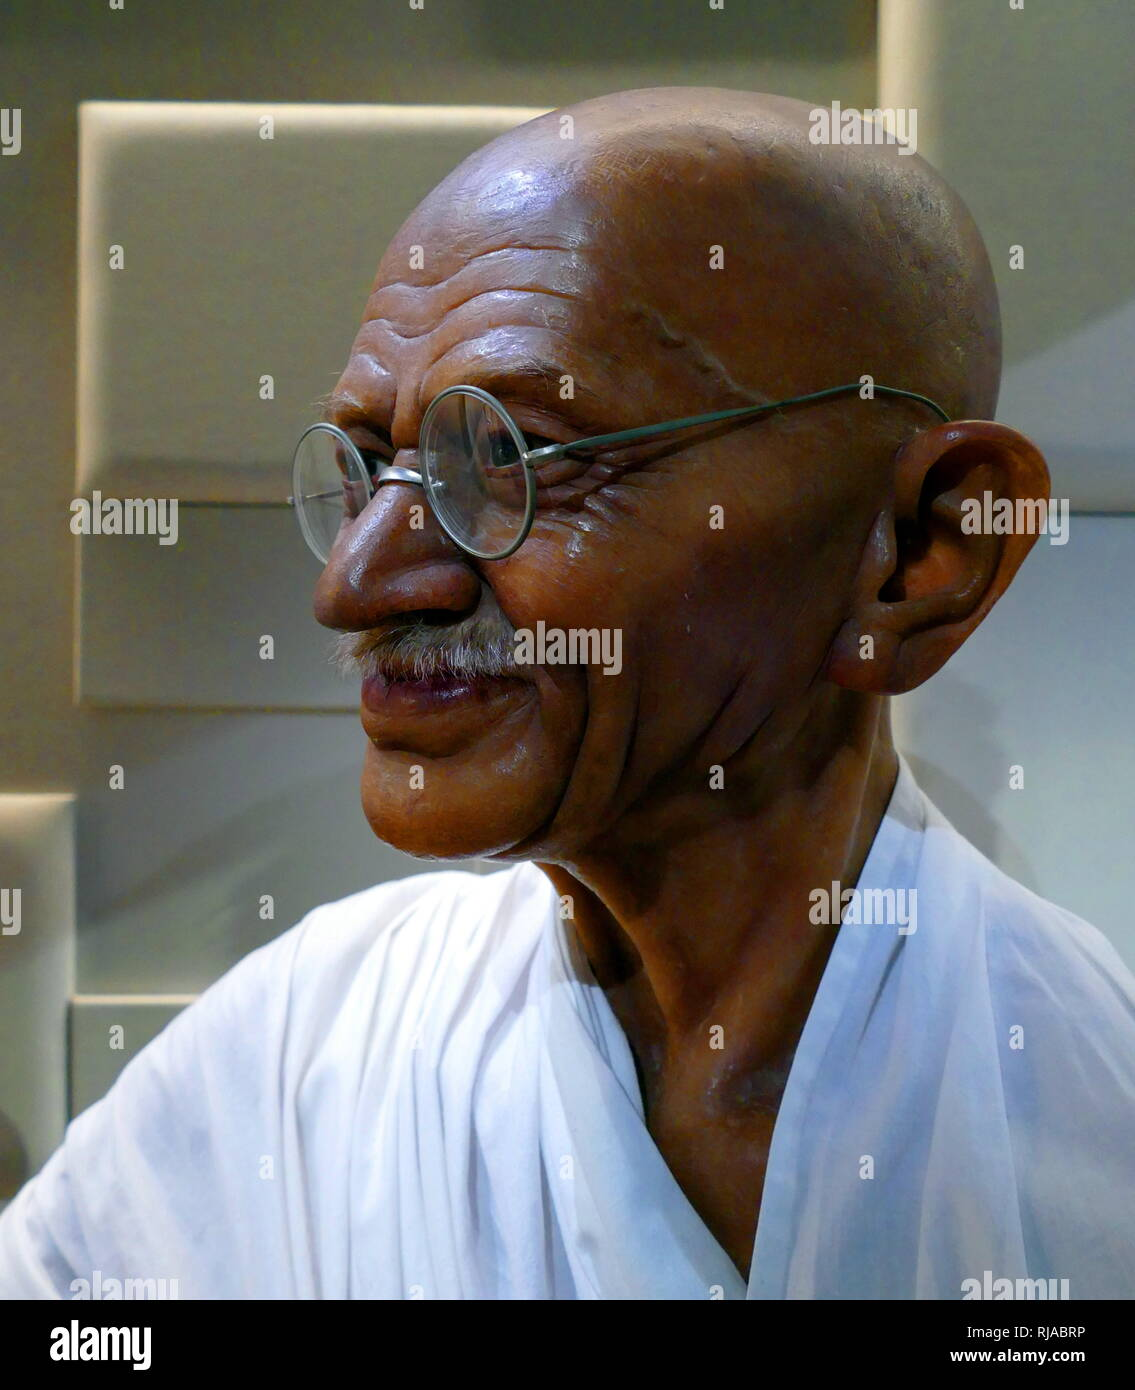 Waxwork figure of Mohandas Karamchand Gandhi, 1869-1948. Indian activist who was the leader of the Indian independence movement against British rule. Employing nonviolent civil disobedience, Gandhi led India to independence and inspired movements for civil rights and freedom - Stock Image